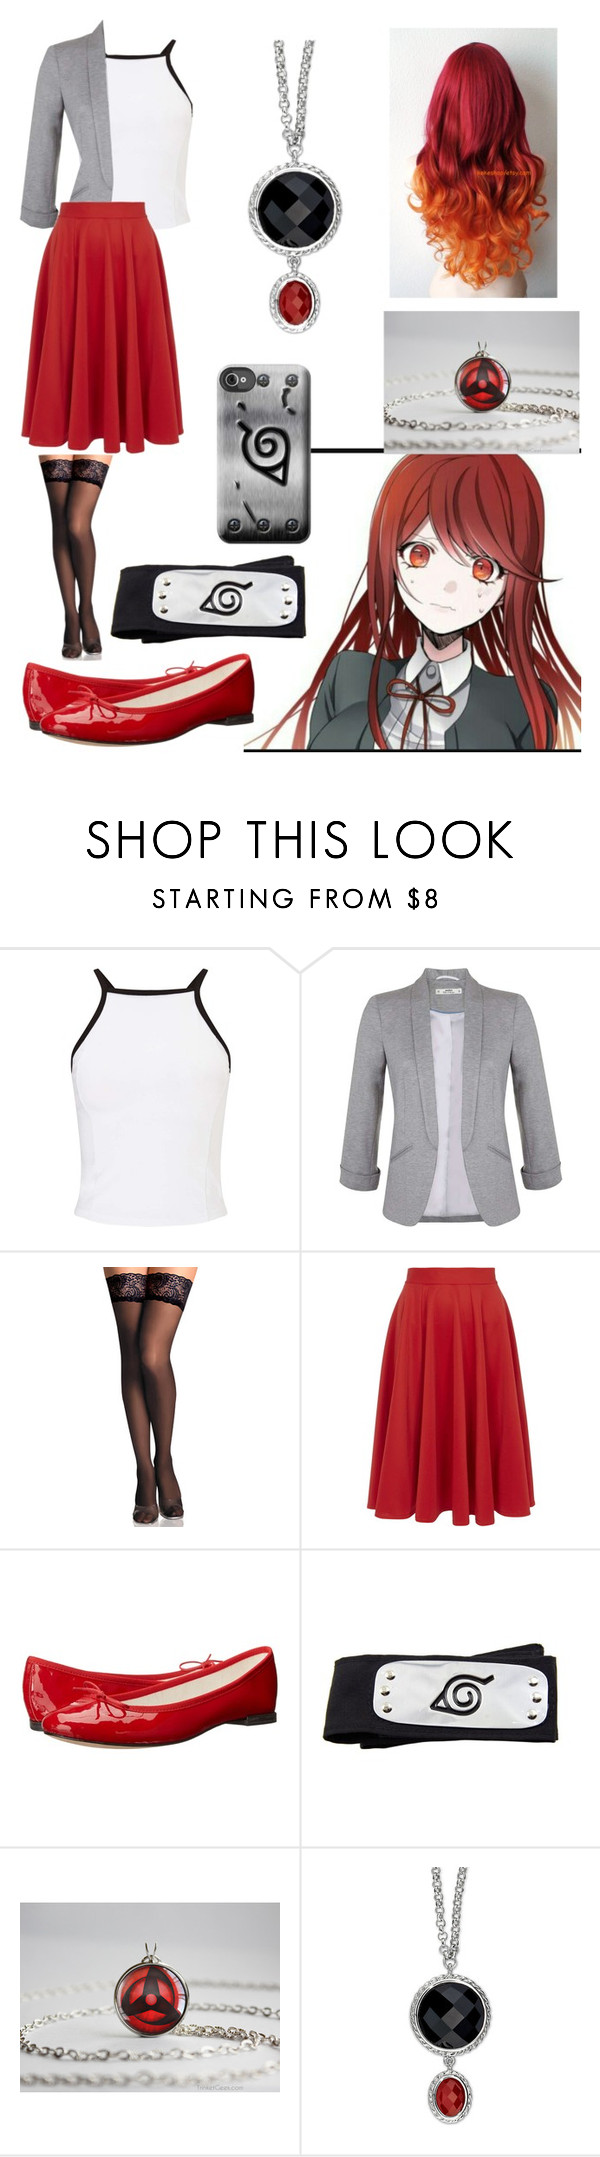 """for a story on wattpad"" by nightmare-reaper ❤ liked on Polyvore featuring Miss Selfridge, Closet and Repetto"